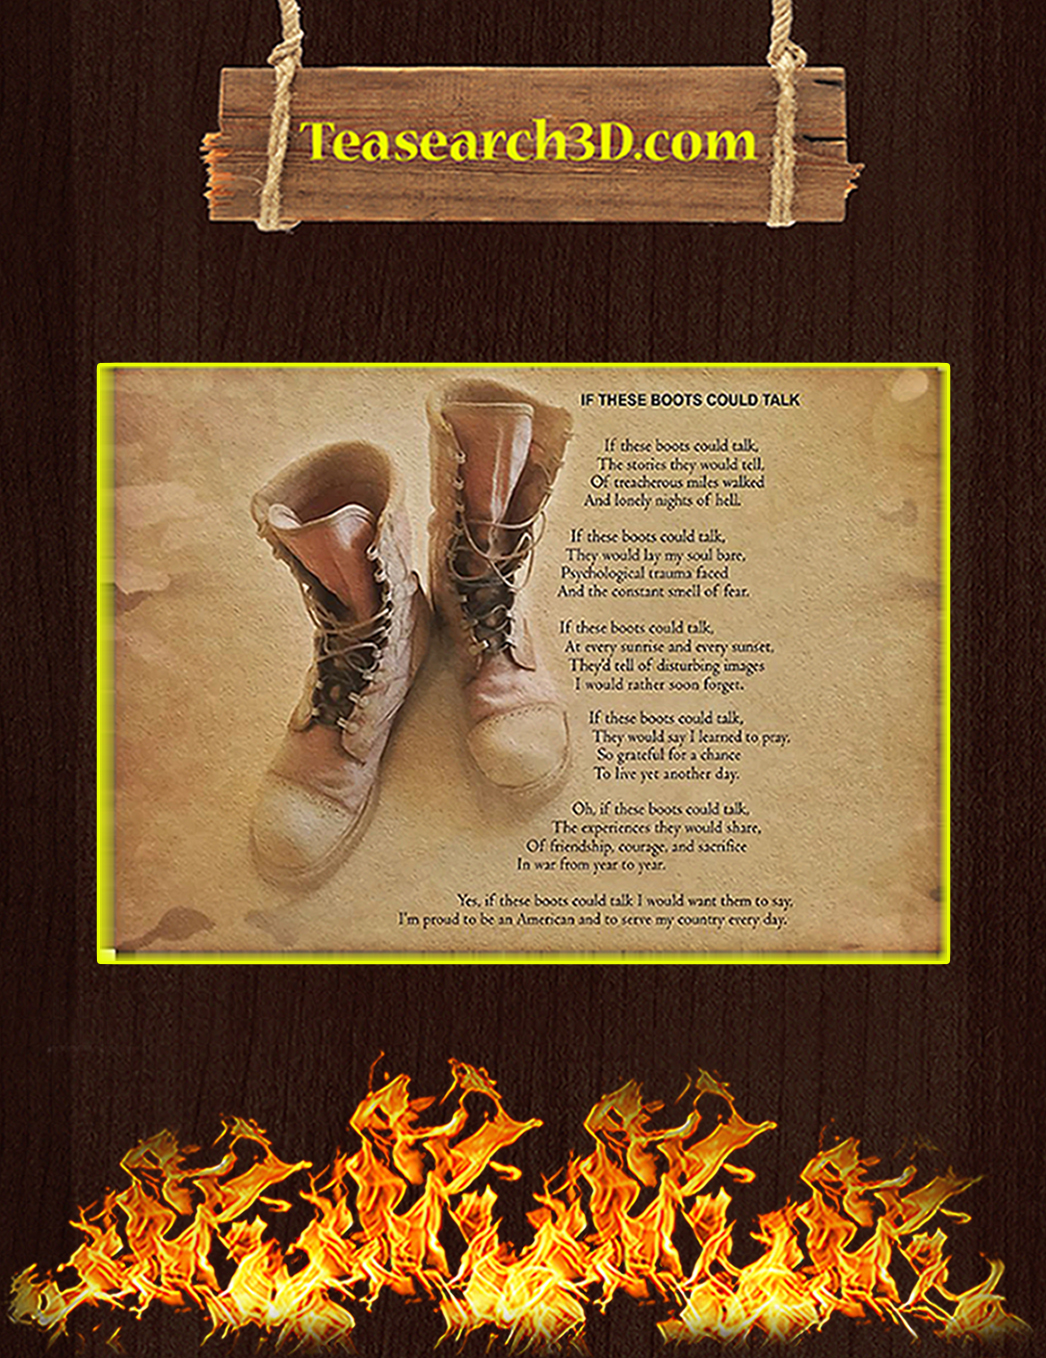 If these boots could talk poster A1